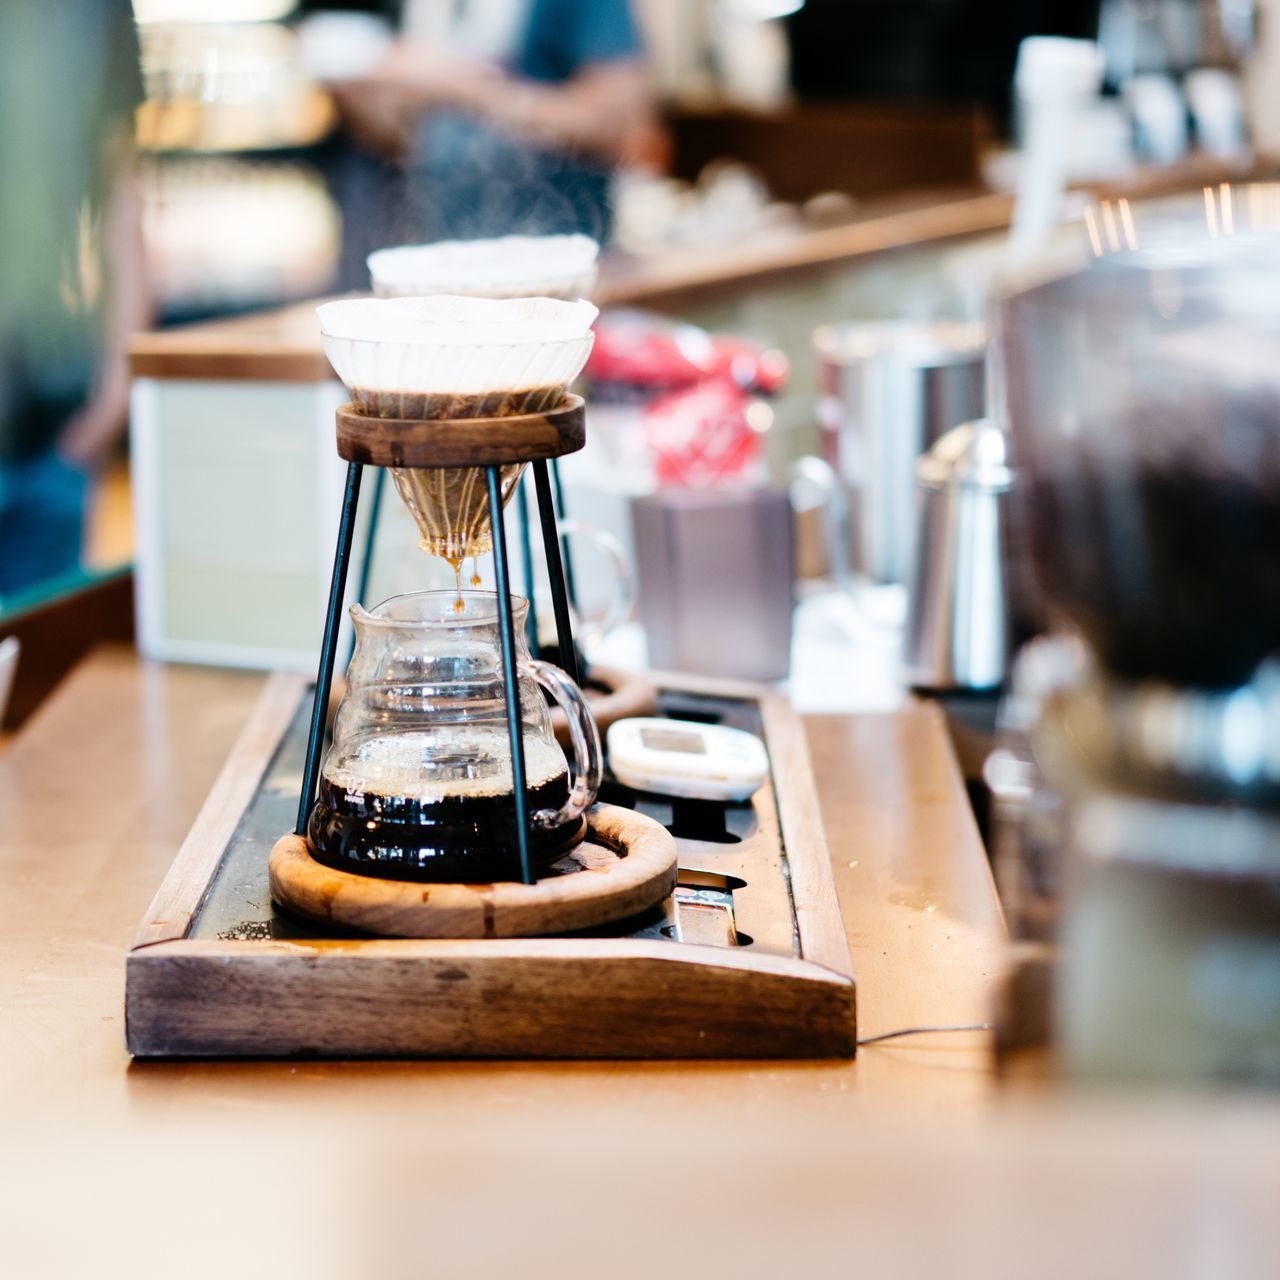 Coffee at my favorite cafe in Berkeley. Table Indoors  Still Life Selective Focus Arrangement Collection Freshness Focus On Foreground No People Coffee Drip Cafe Pour Wait Slow Hipster Gluten Free